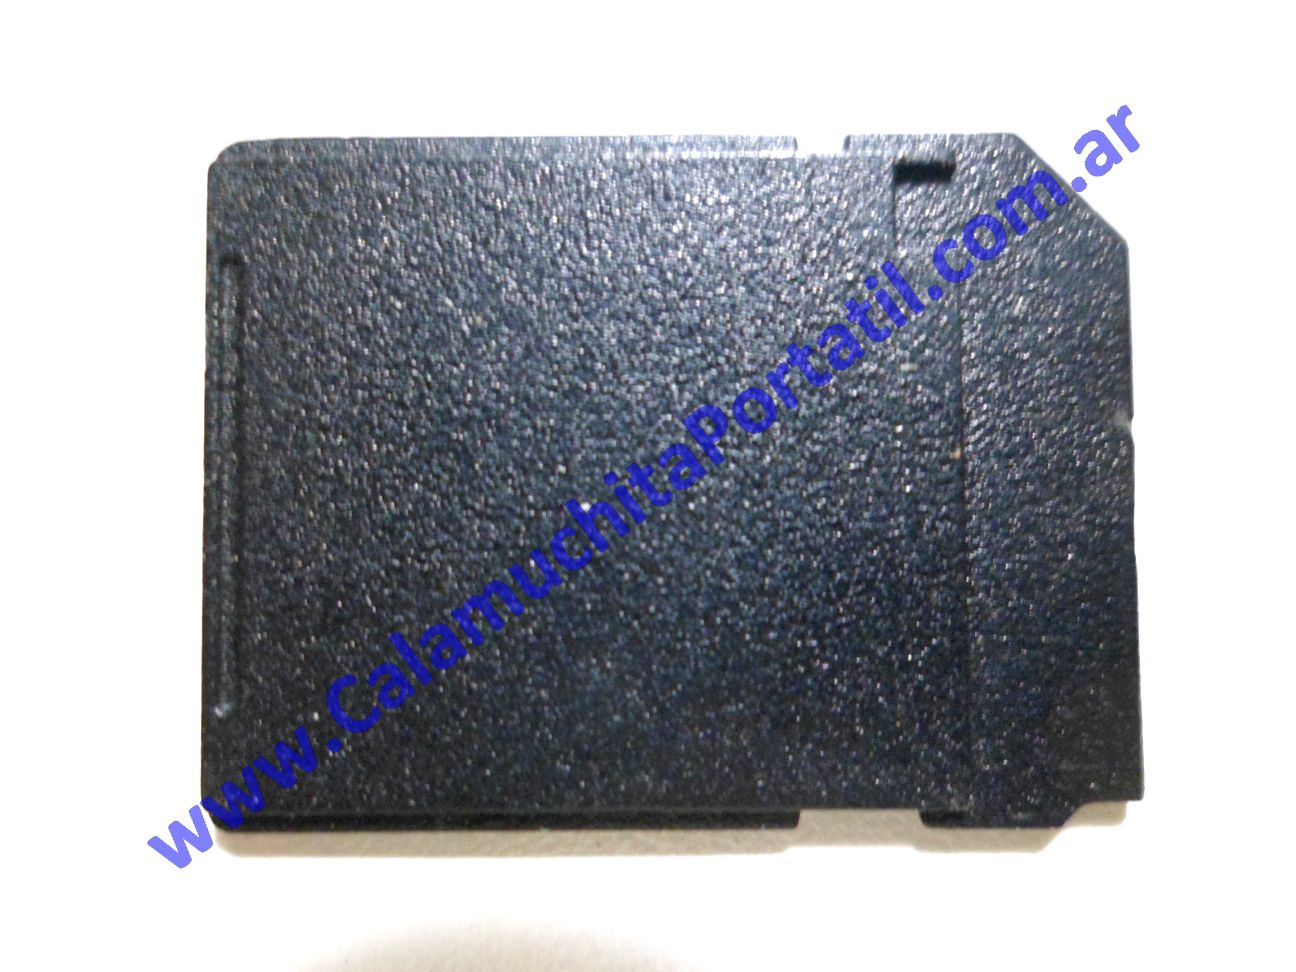 0173XPS Protector SD Asus Eee PC 1025C